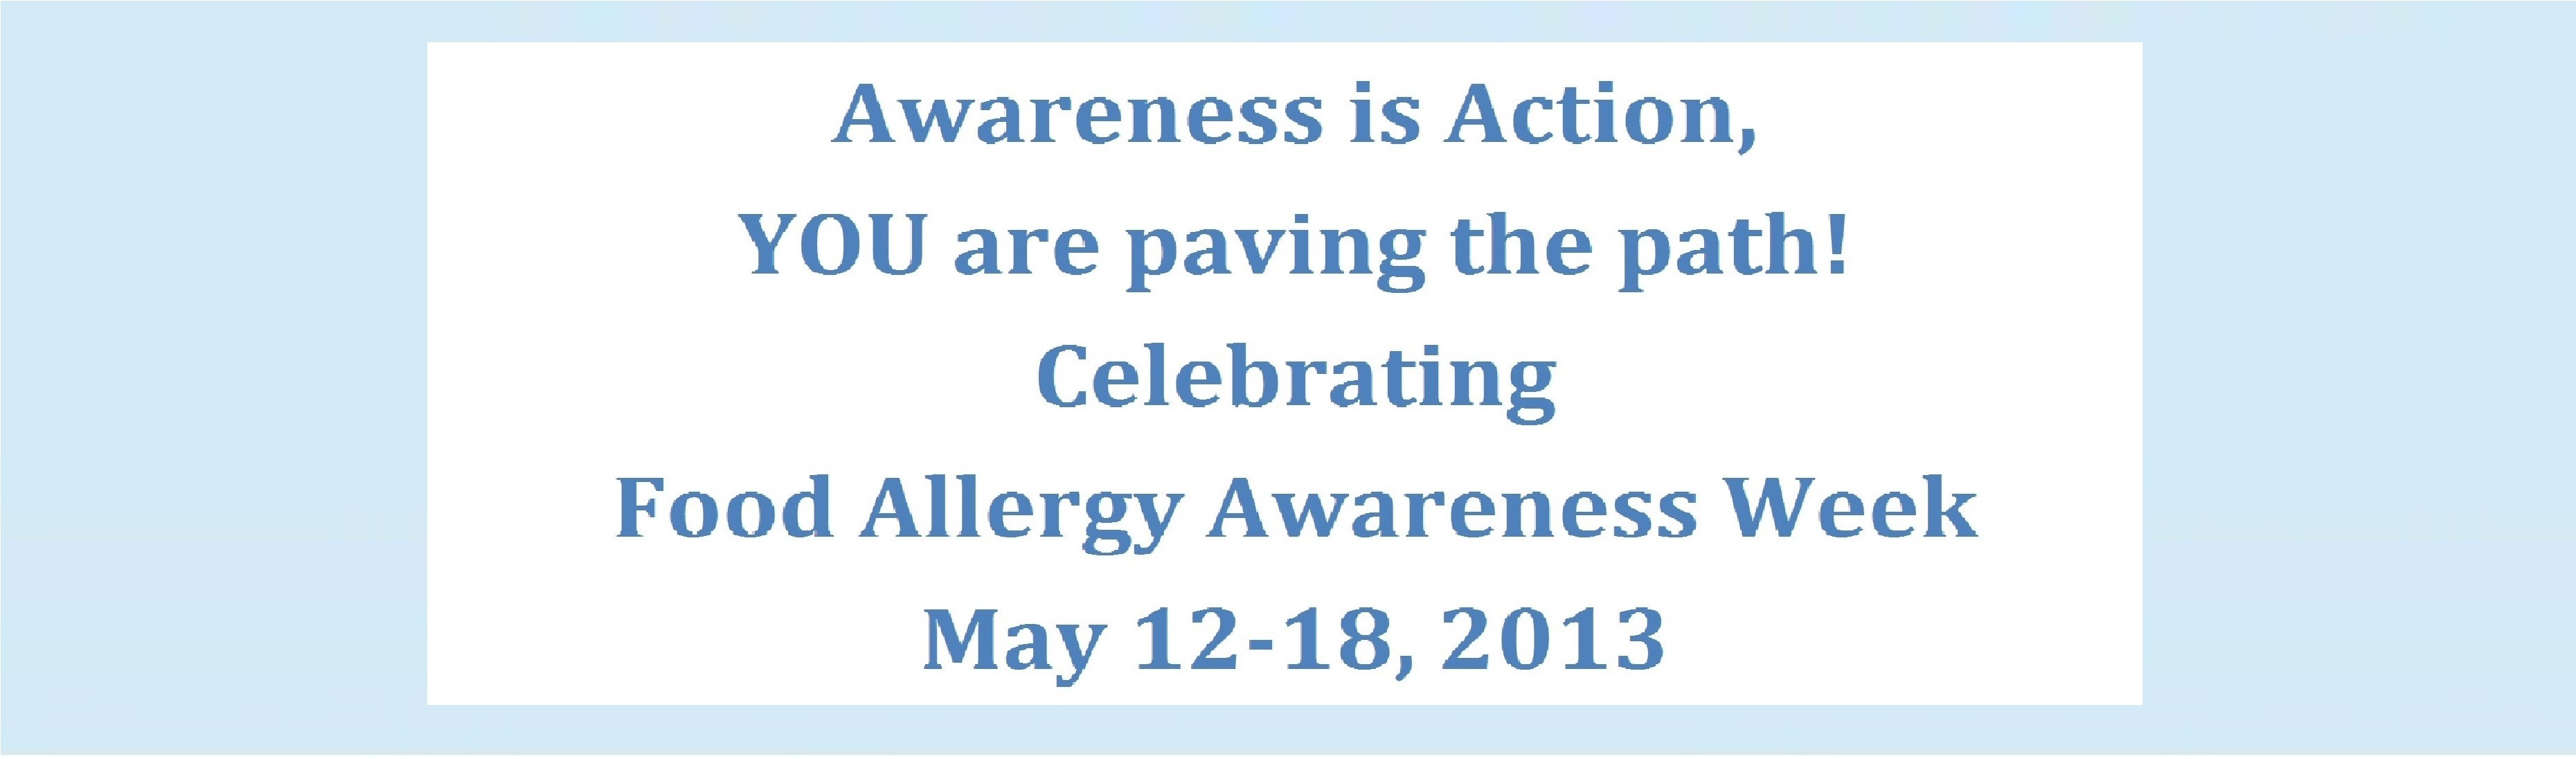 awareness is action banner